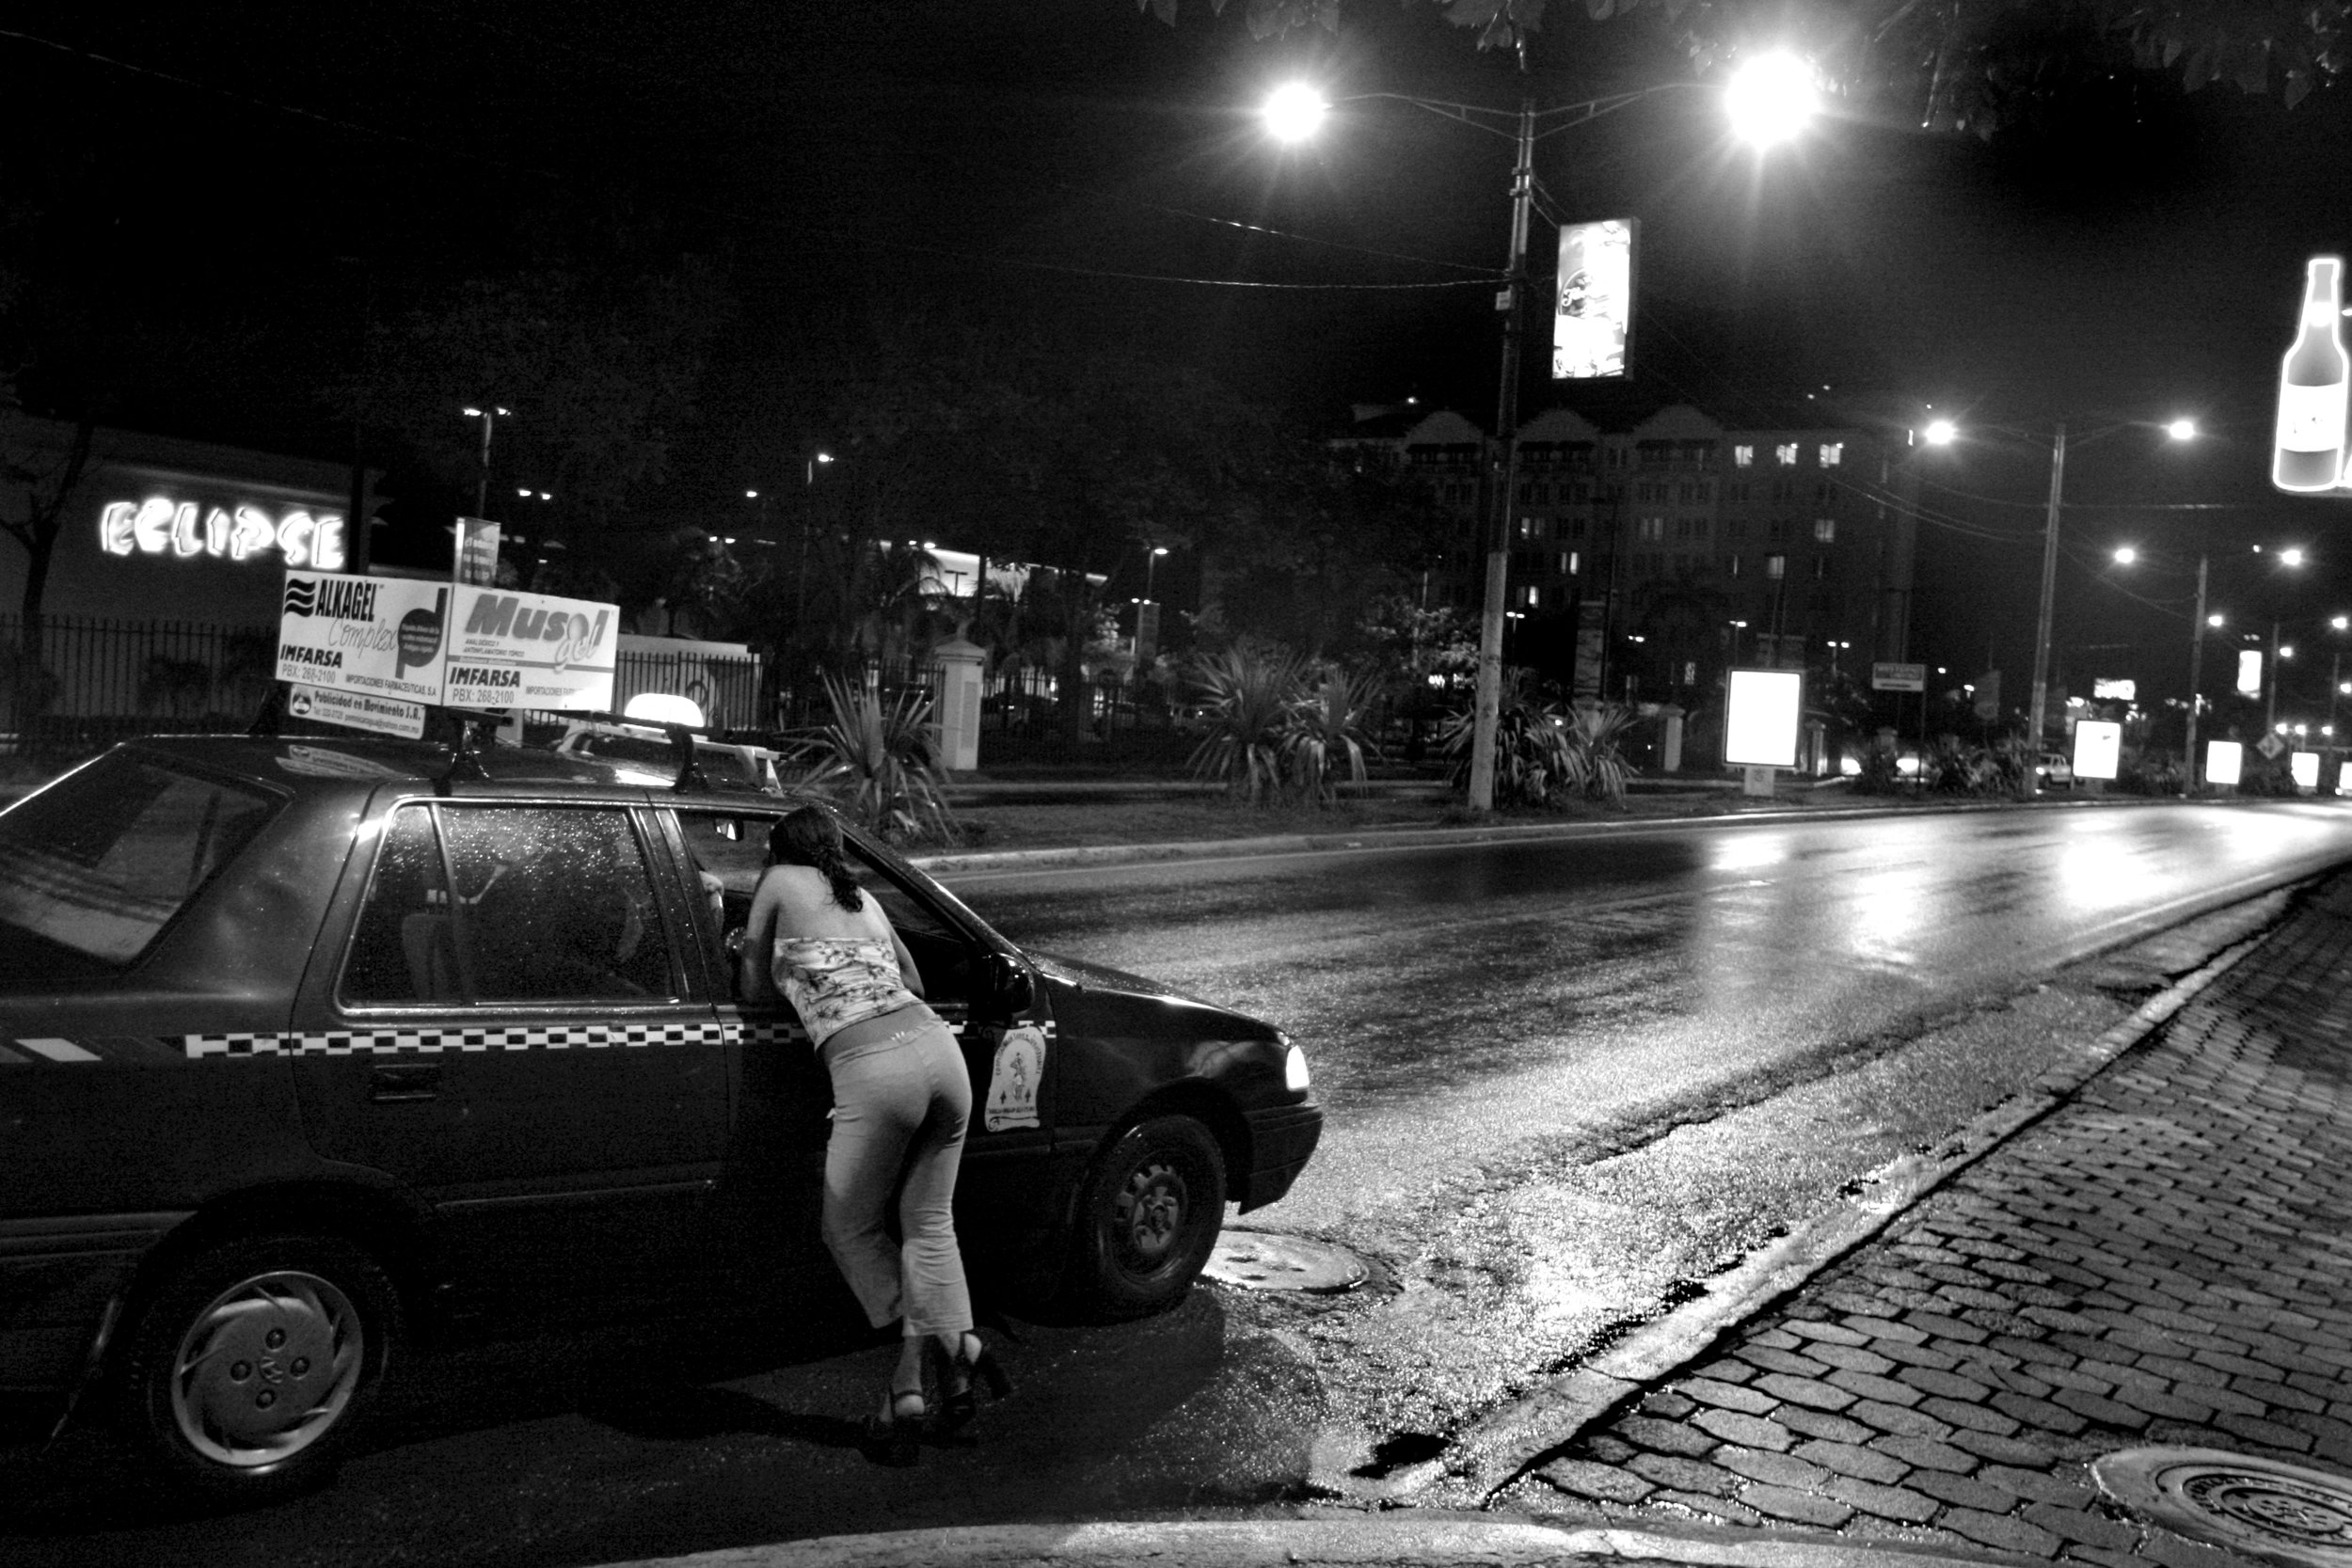 """Ivania Gonzalez, 16, solicits a customer on a main street in downtown Managua. When Ivania was 12, she was raped by a cousin. """"This life is not happy and not nice. I can do it now but probably not later. I don't like this life. It's for money to pay for my classes. In four months I graduate. I'm trying to see if I can buy a small house and make my own beauty business. I want to study computer engineering."""""""